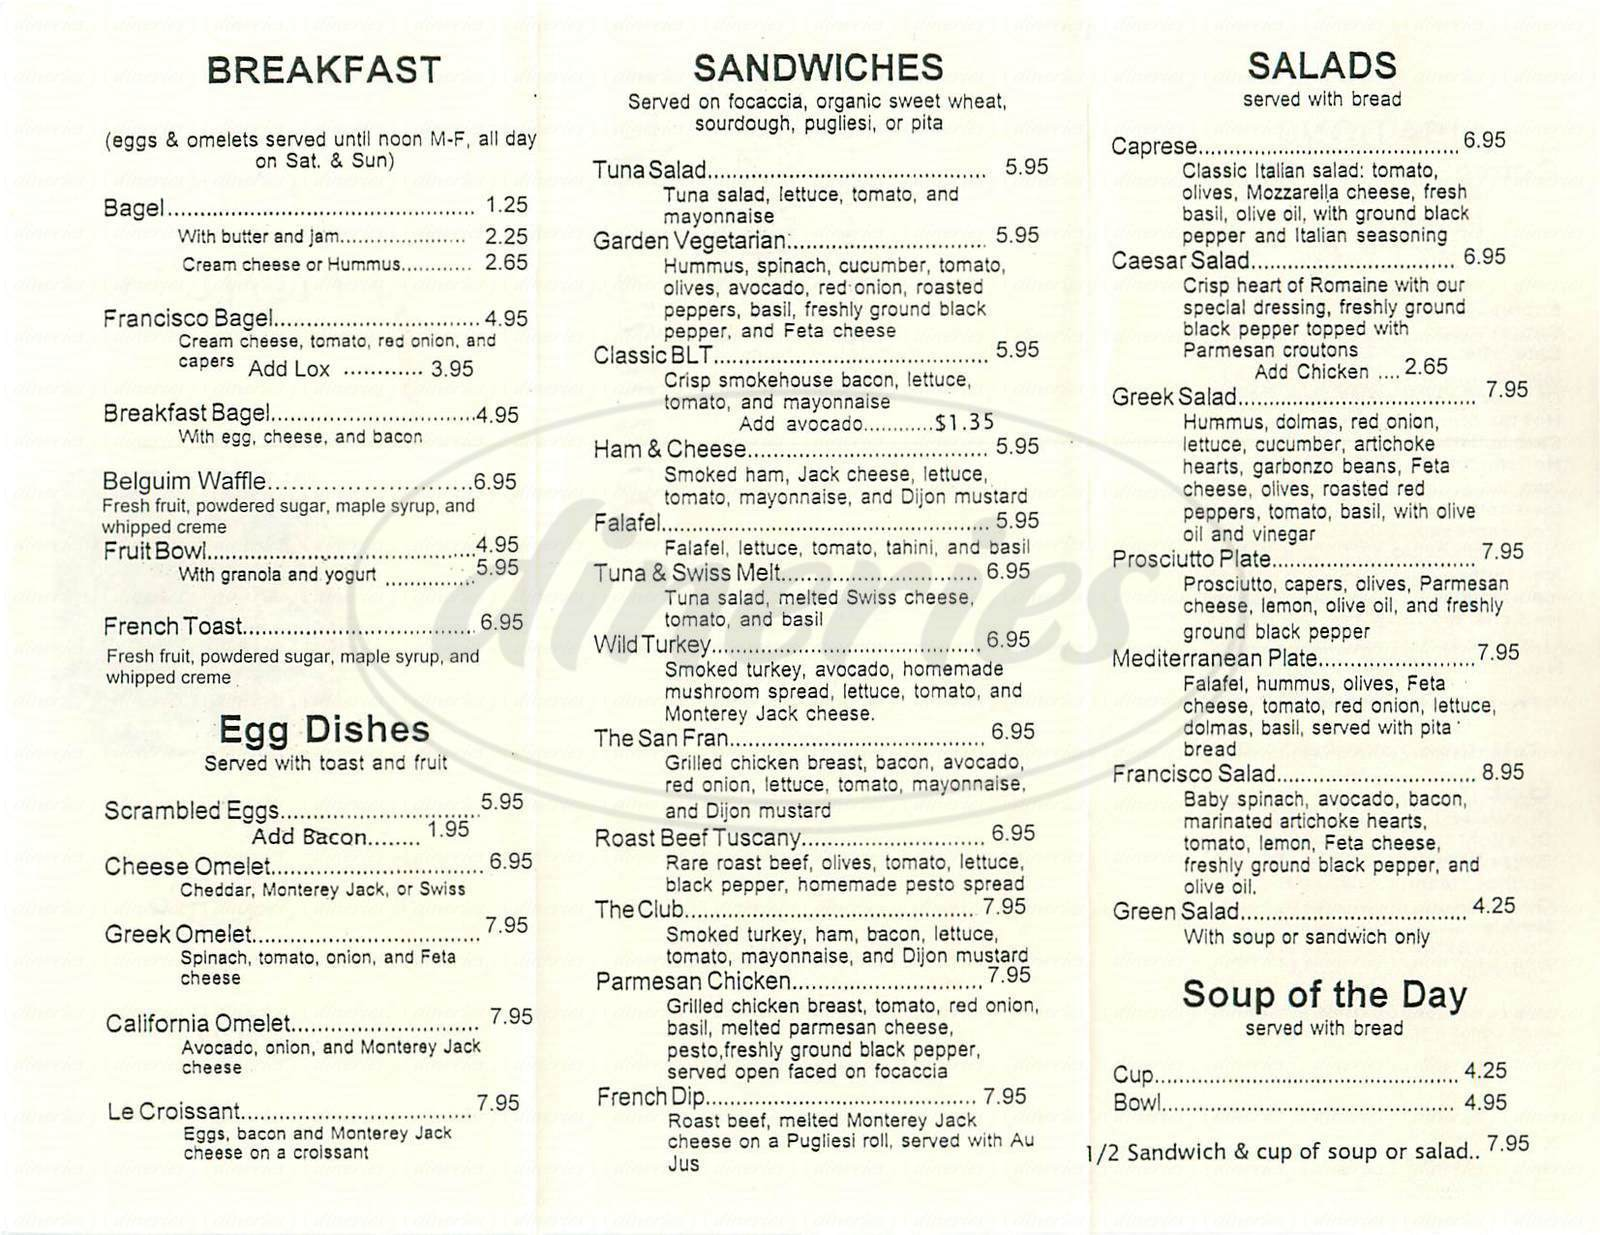 menu for Café Francisco